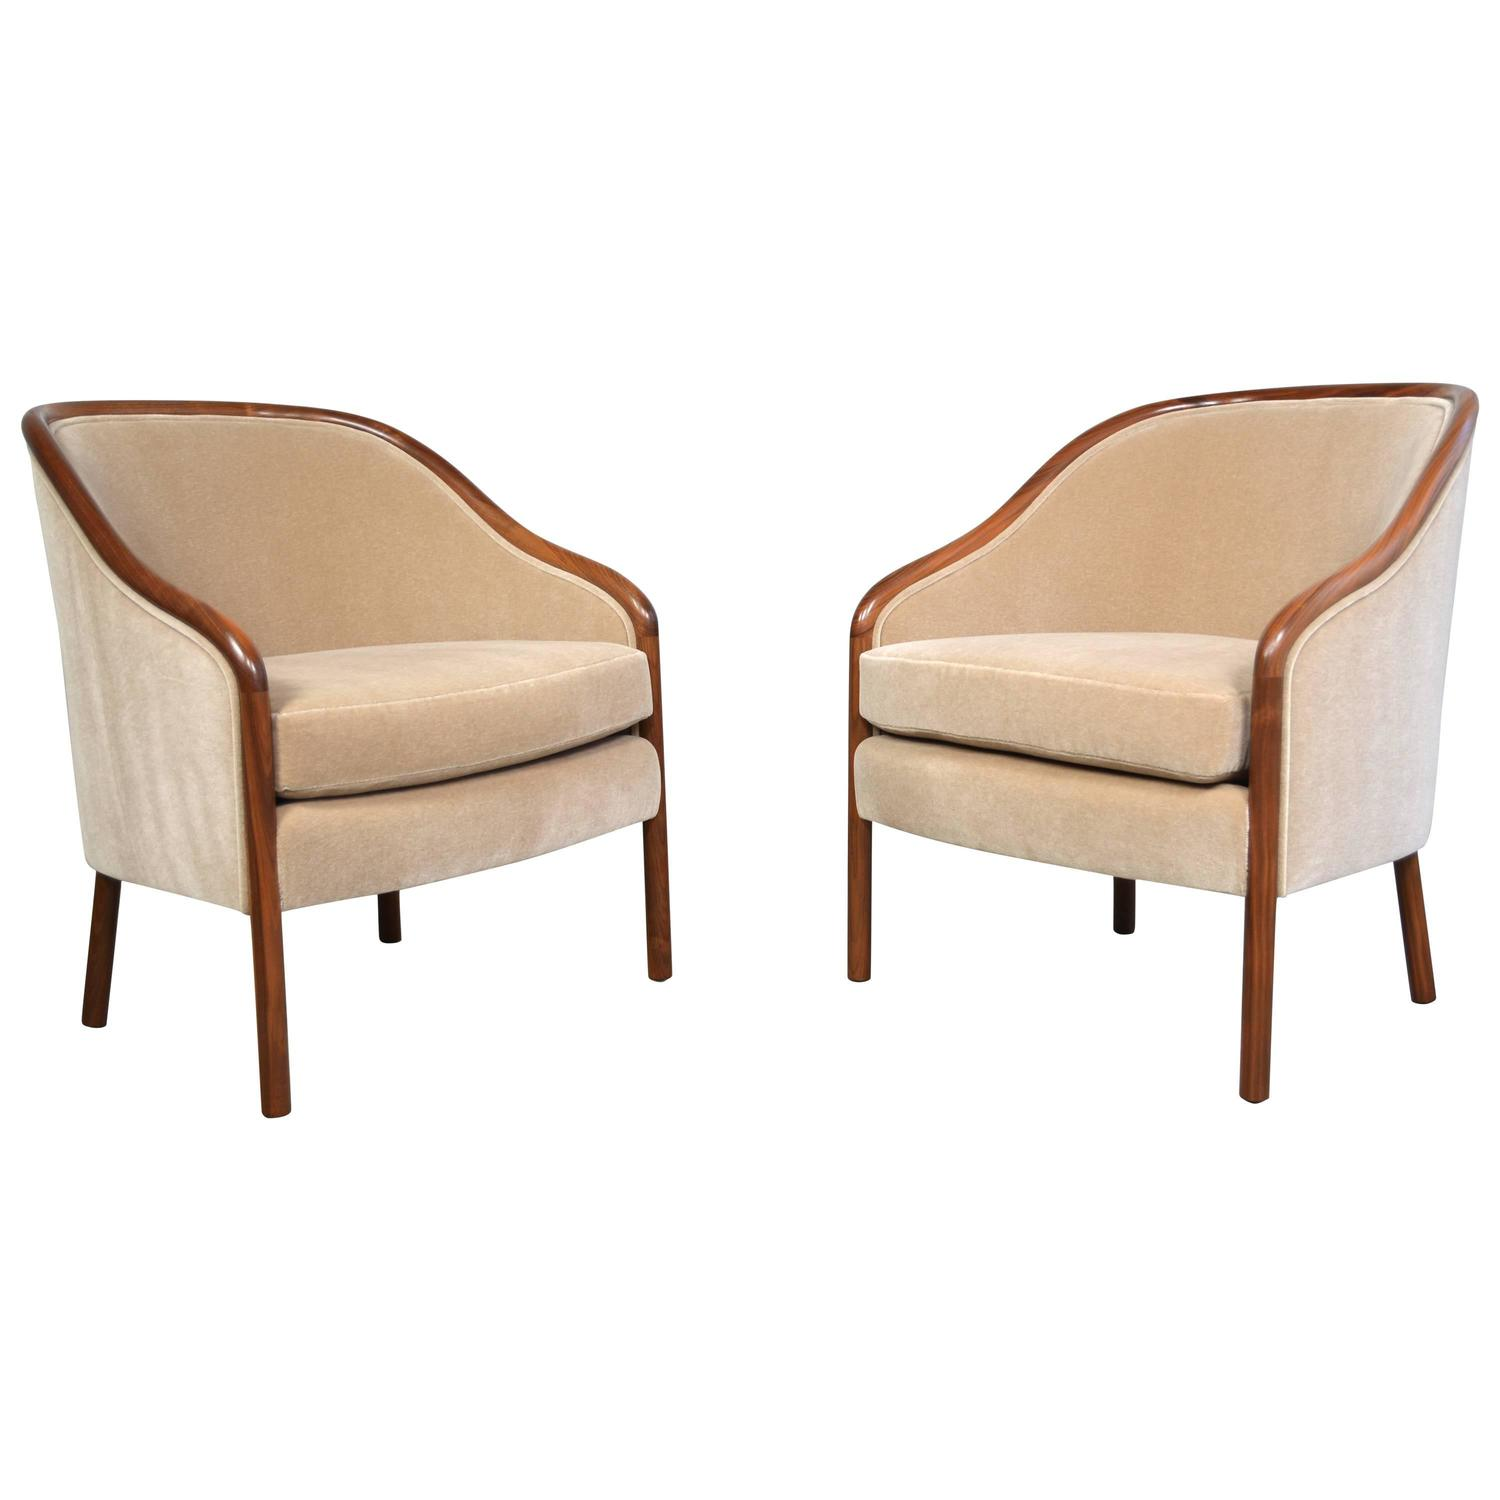 Ward Bennett Lounge Chairs at 1stdibs